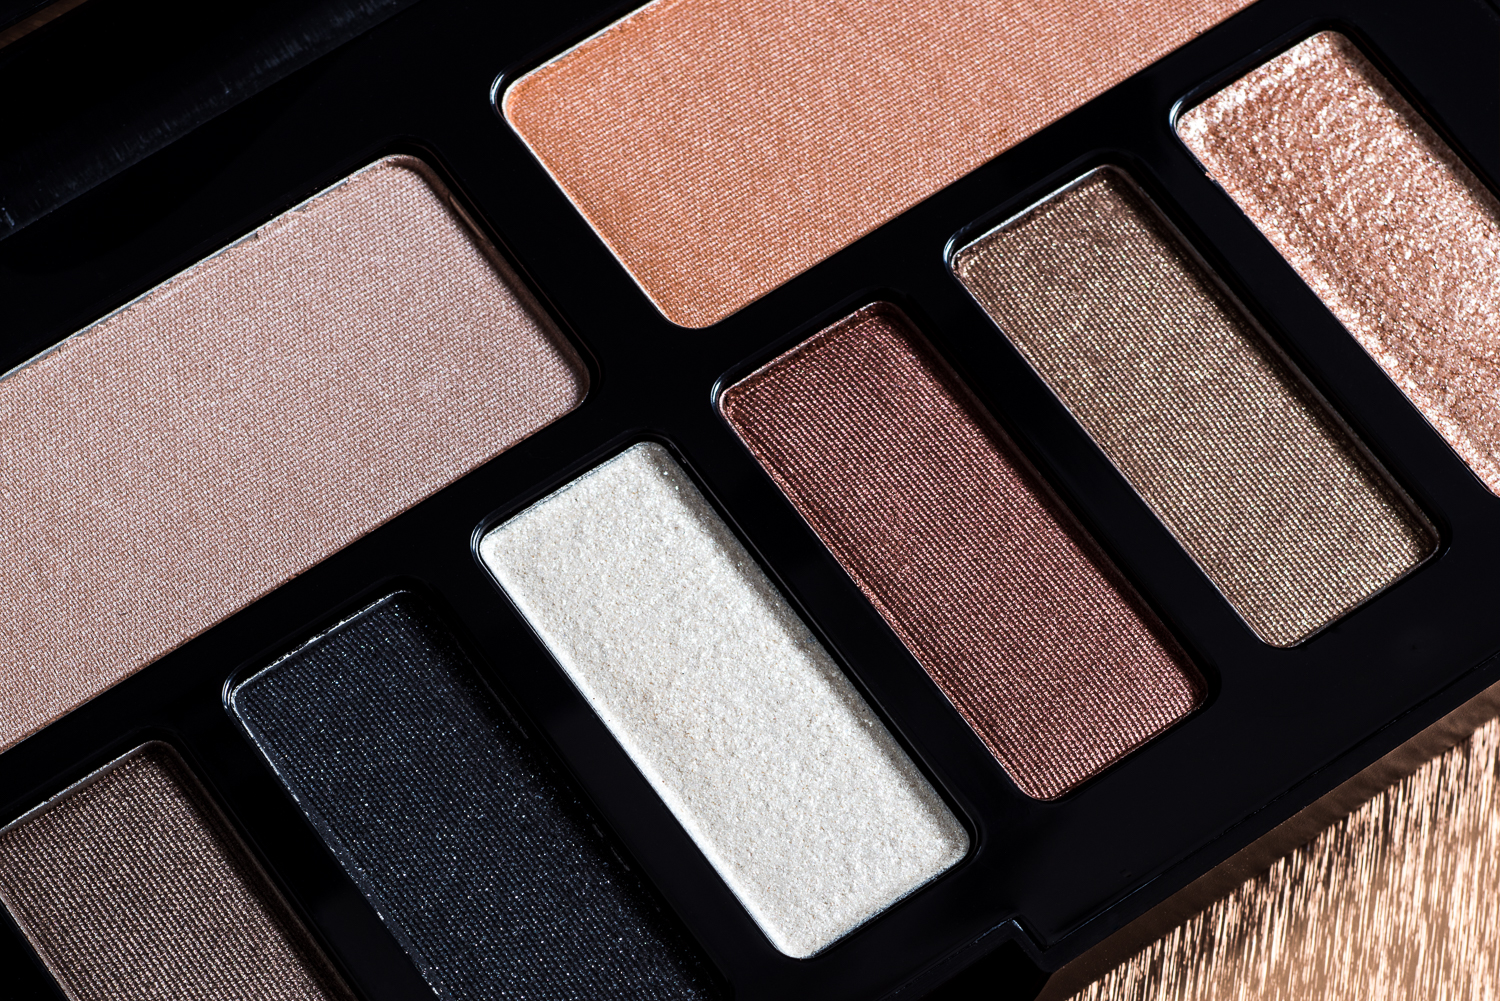 Kat Von D Beauty Shade & Light Eyeshadow Palette Macro